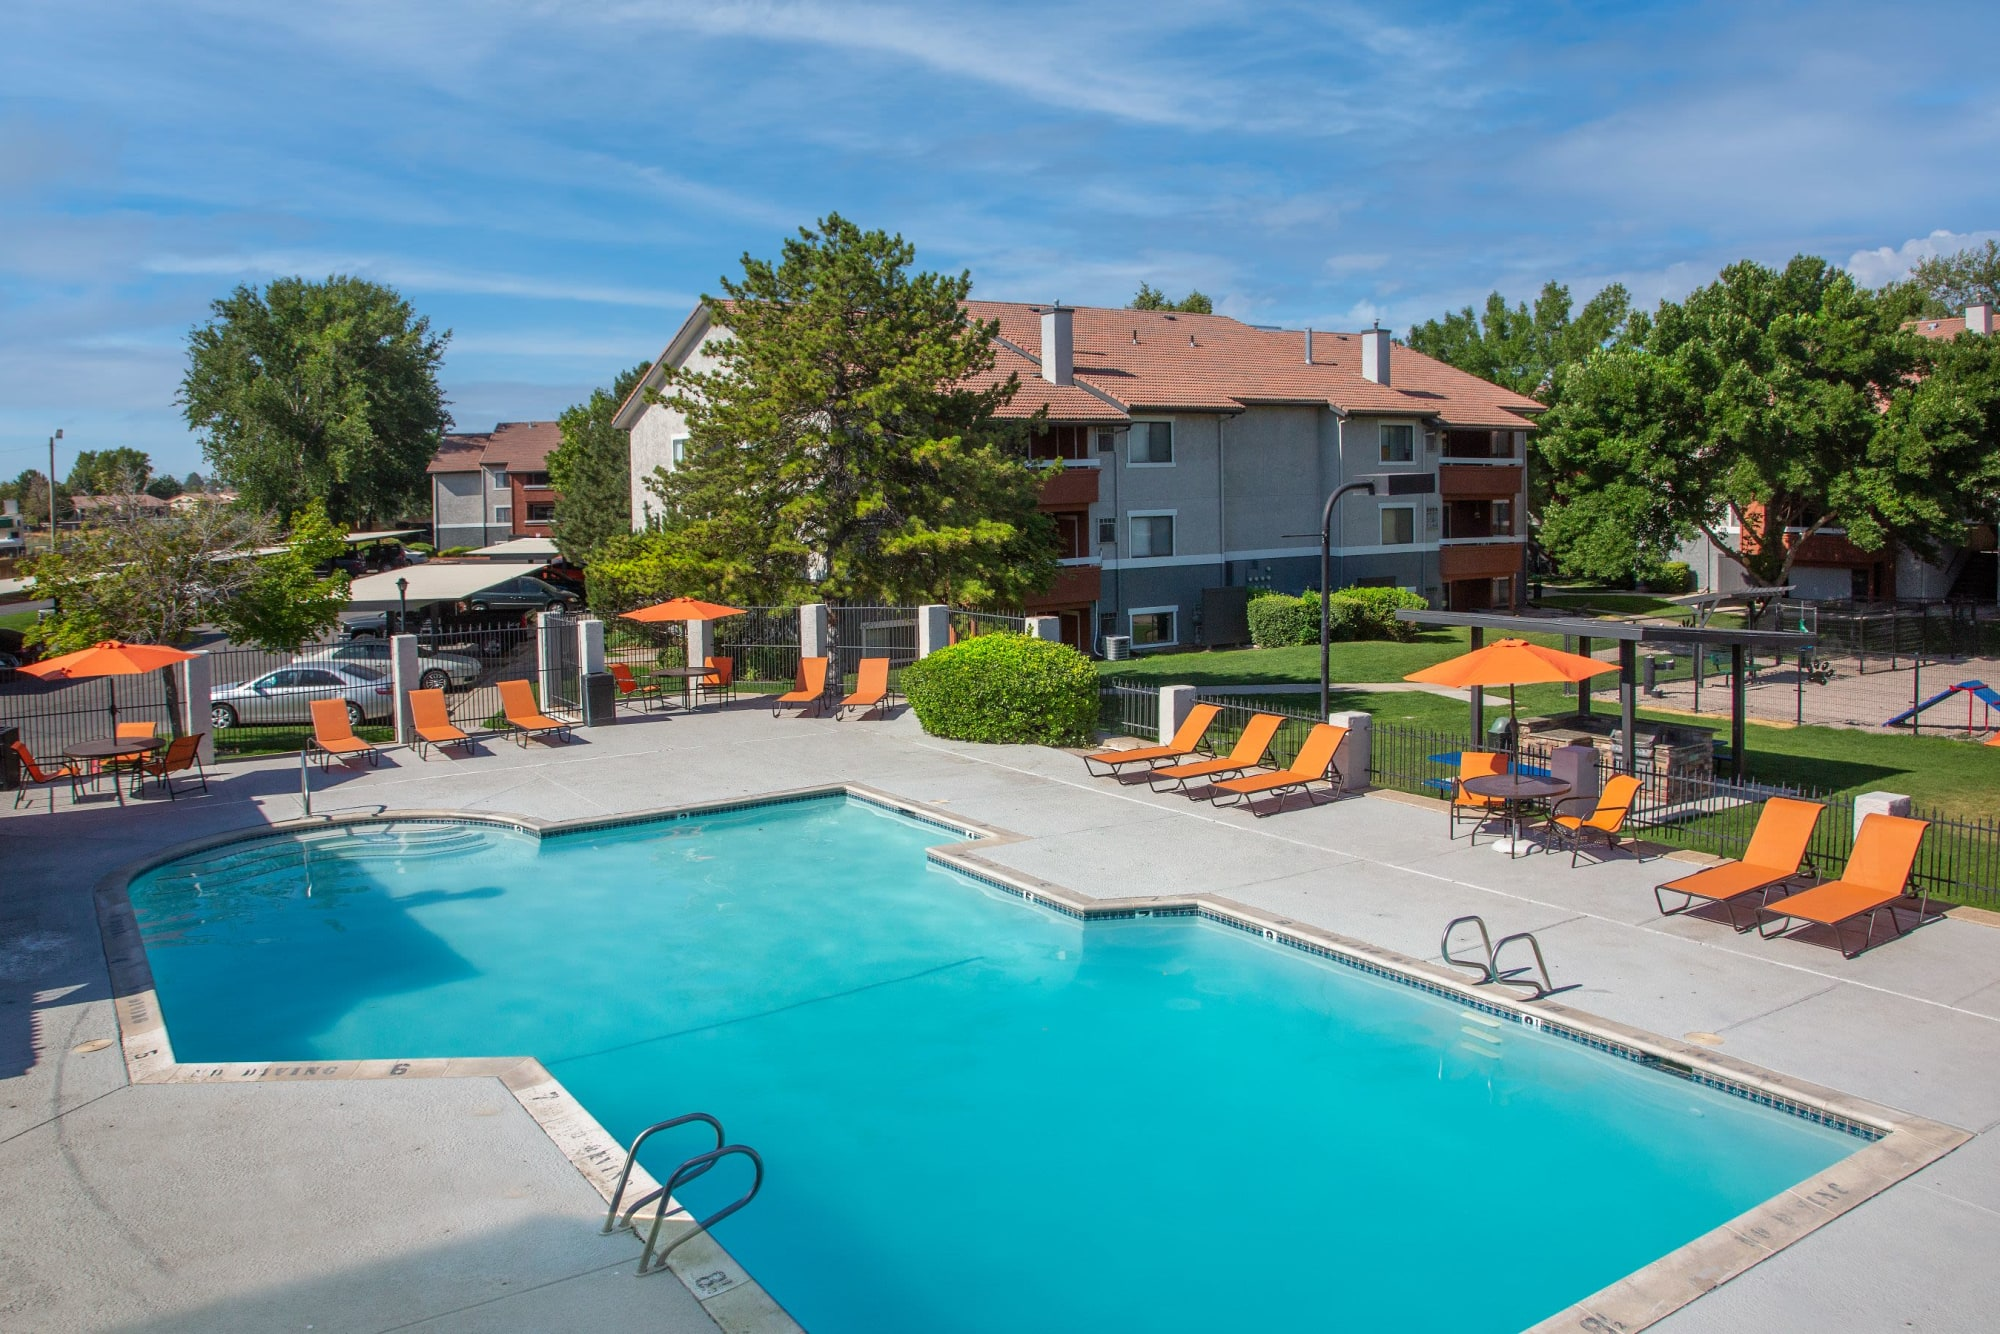 Sparkling community swimming pool with lounge chairs at Shadowbrook Apartments in West Valley City, Utah